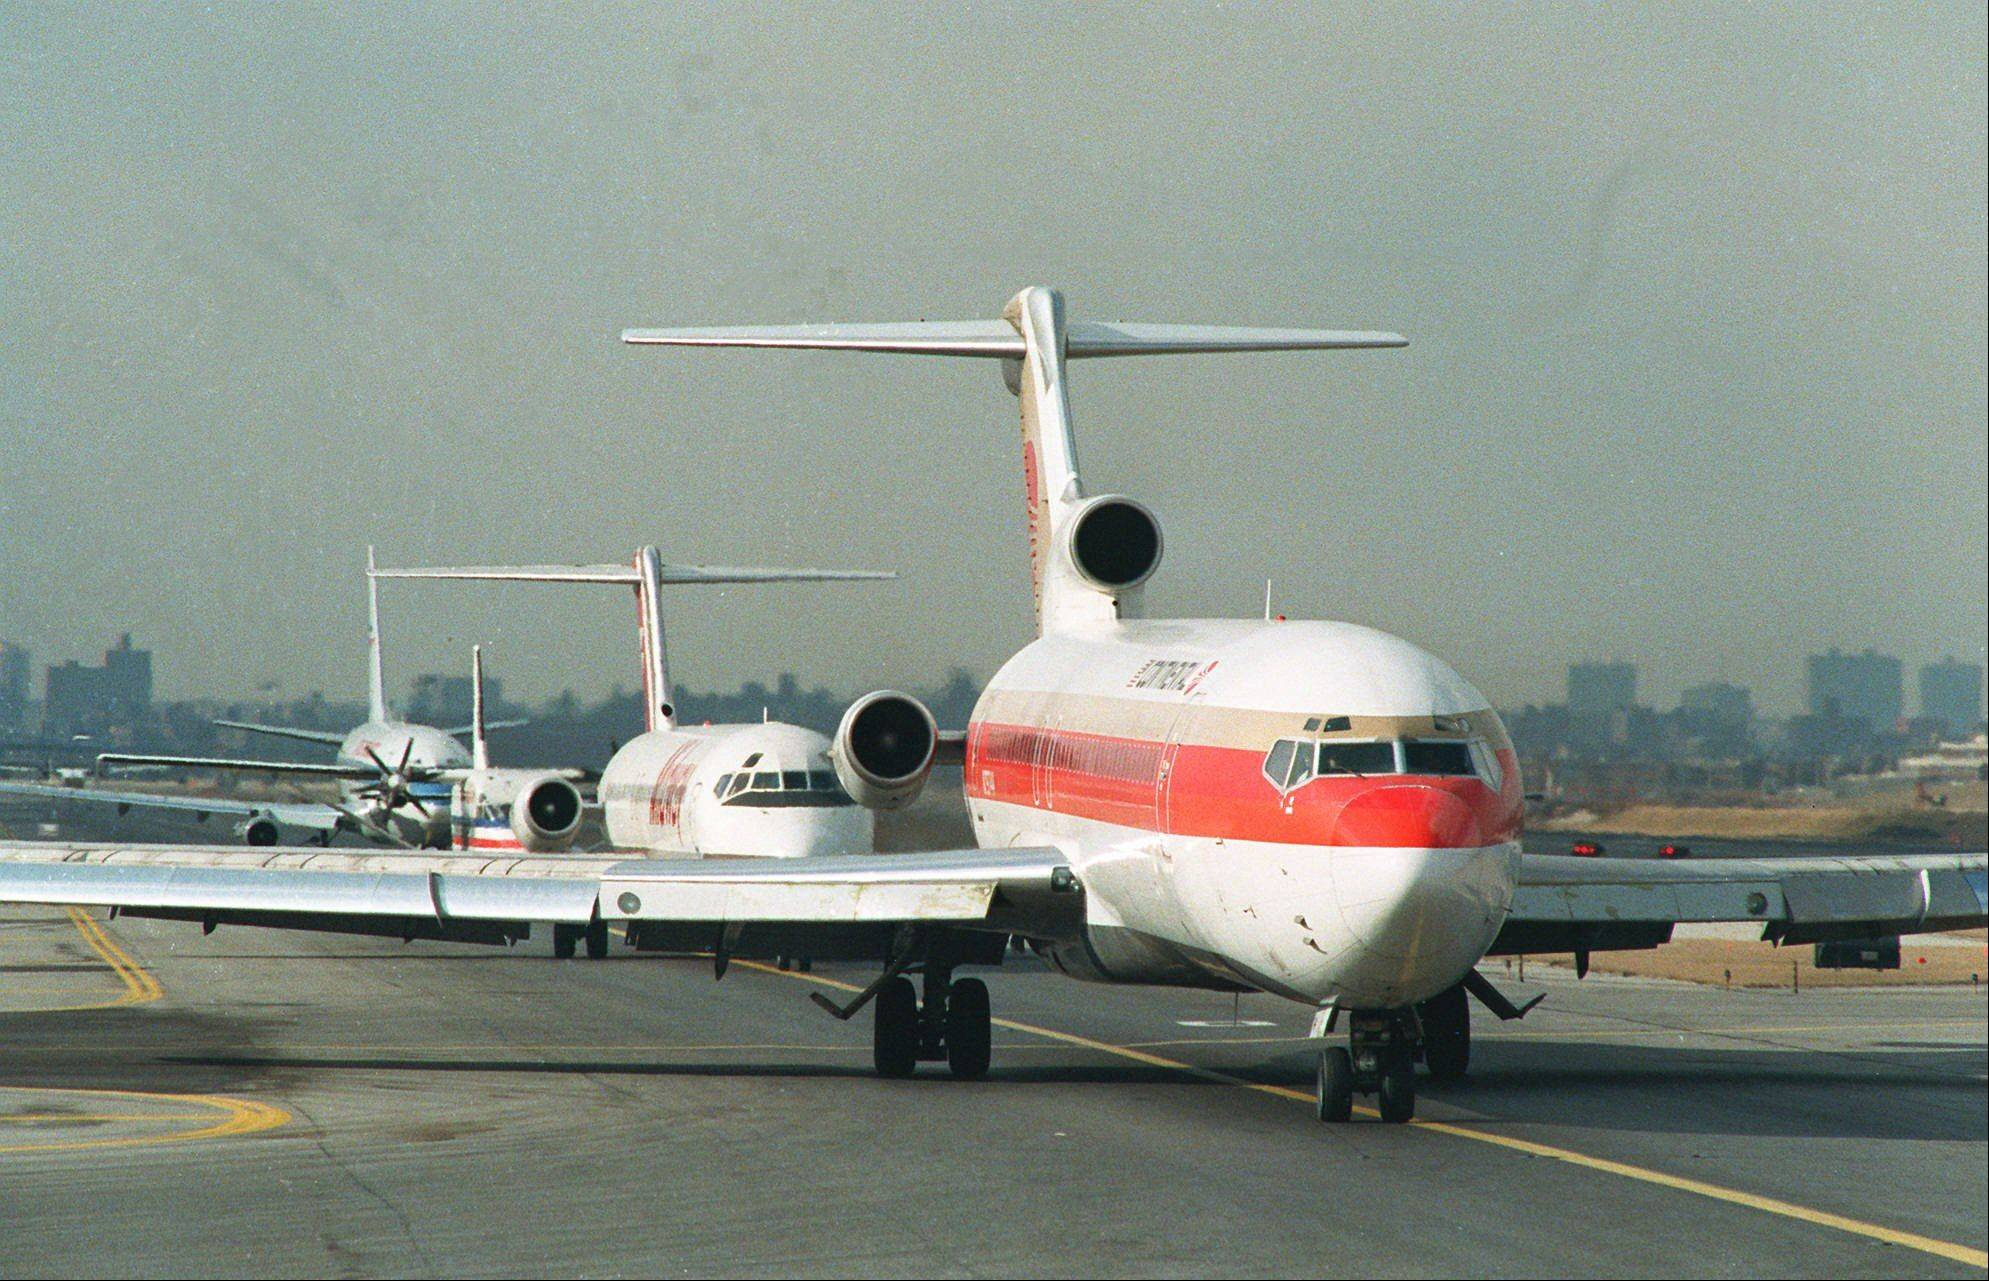 Associated Press File Photo In this February 1989 file photo, airplanes line up on the runway of New York's La Guardia Airport cued for takeoff. On Sunday, Feb. 17, 2013, New York Governor Andrew Cuomo said that LaGuardia Airport is set to receive $37.5 million in federal and state funds for five projects that will protect the runways and flood barrier berms breached by Supertsorm Sandy.